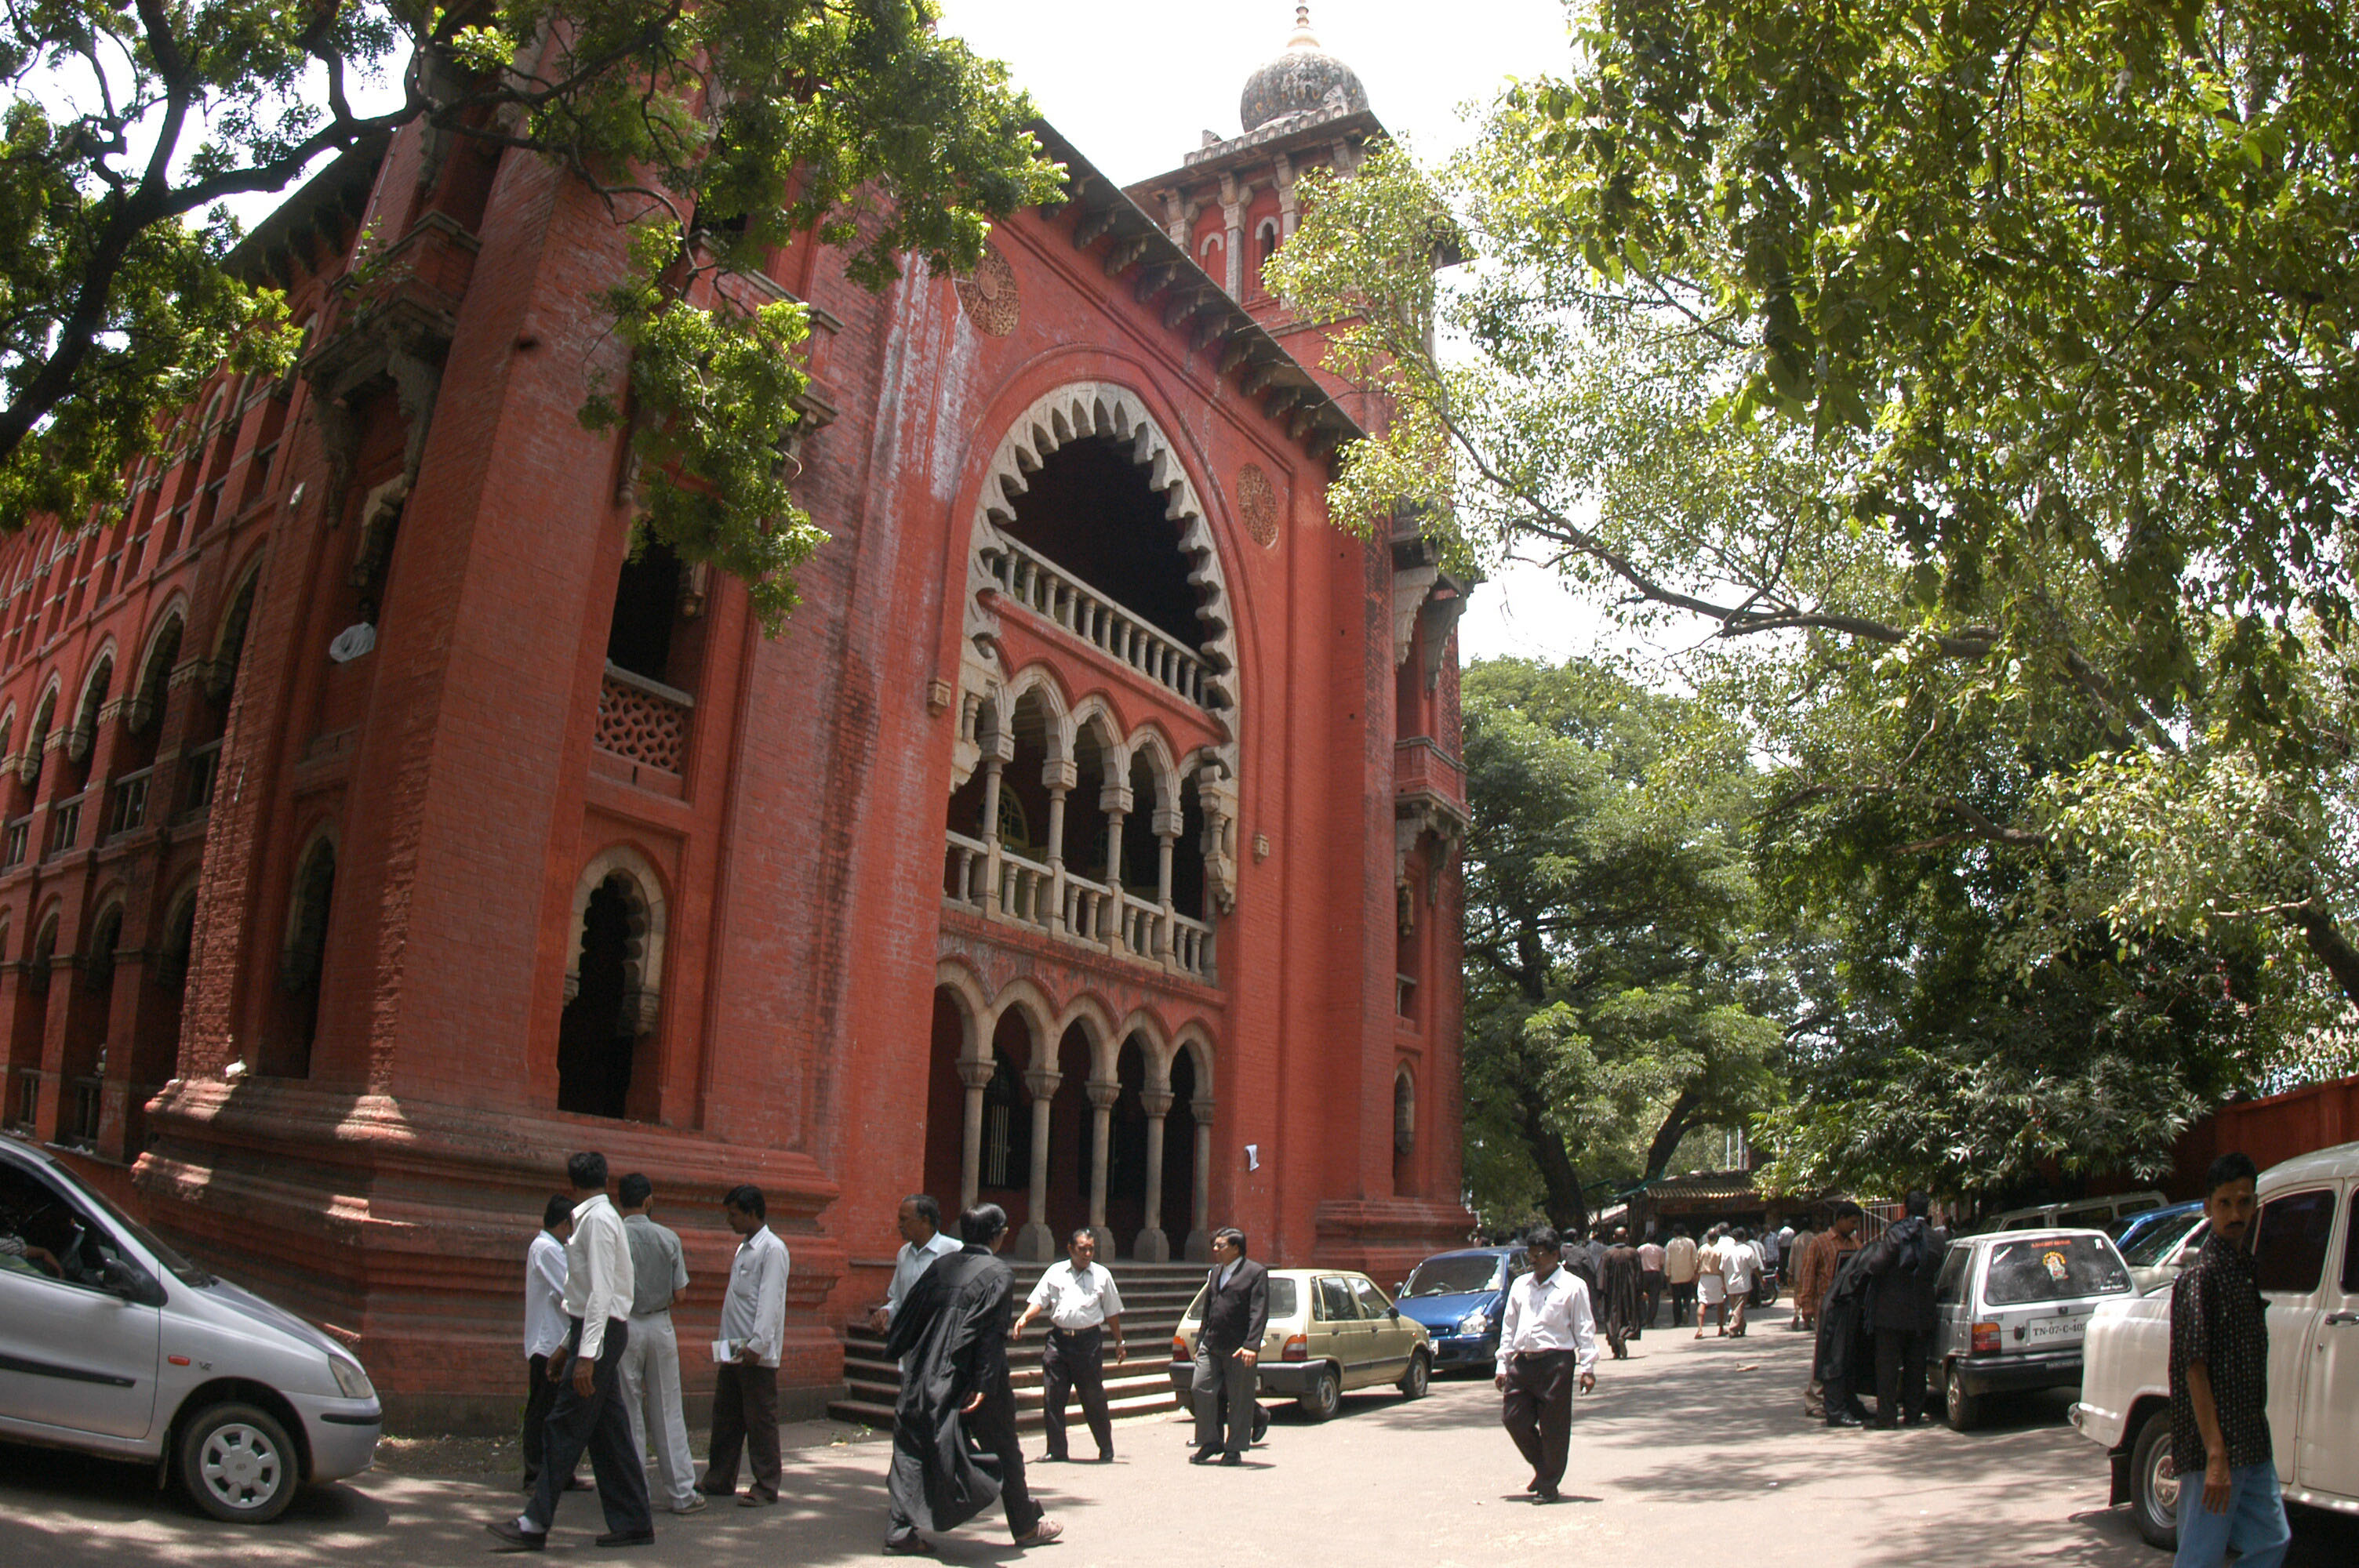 View of the Chennai High Court in Chennai, Tamil Nadu, India on Sept. 6, 2006.